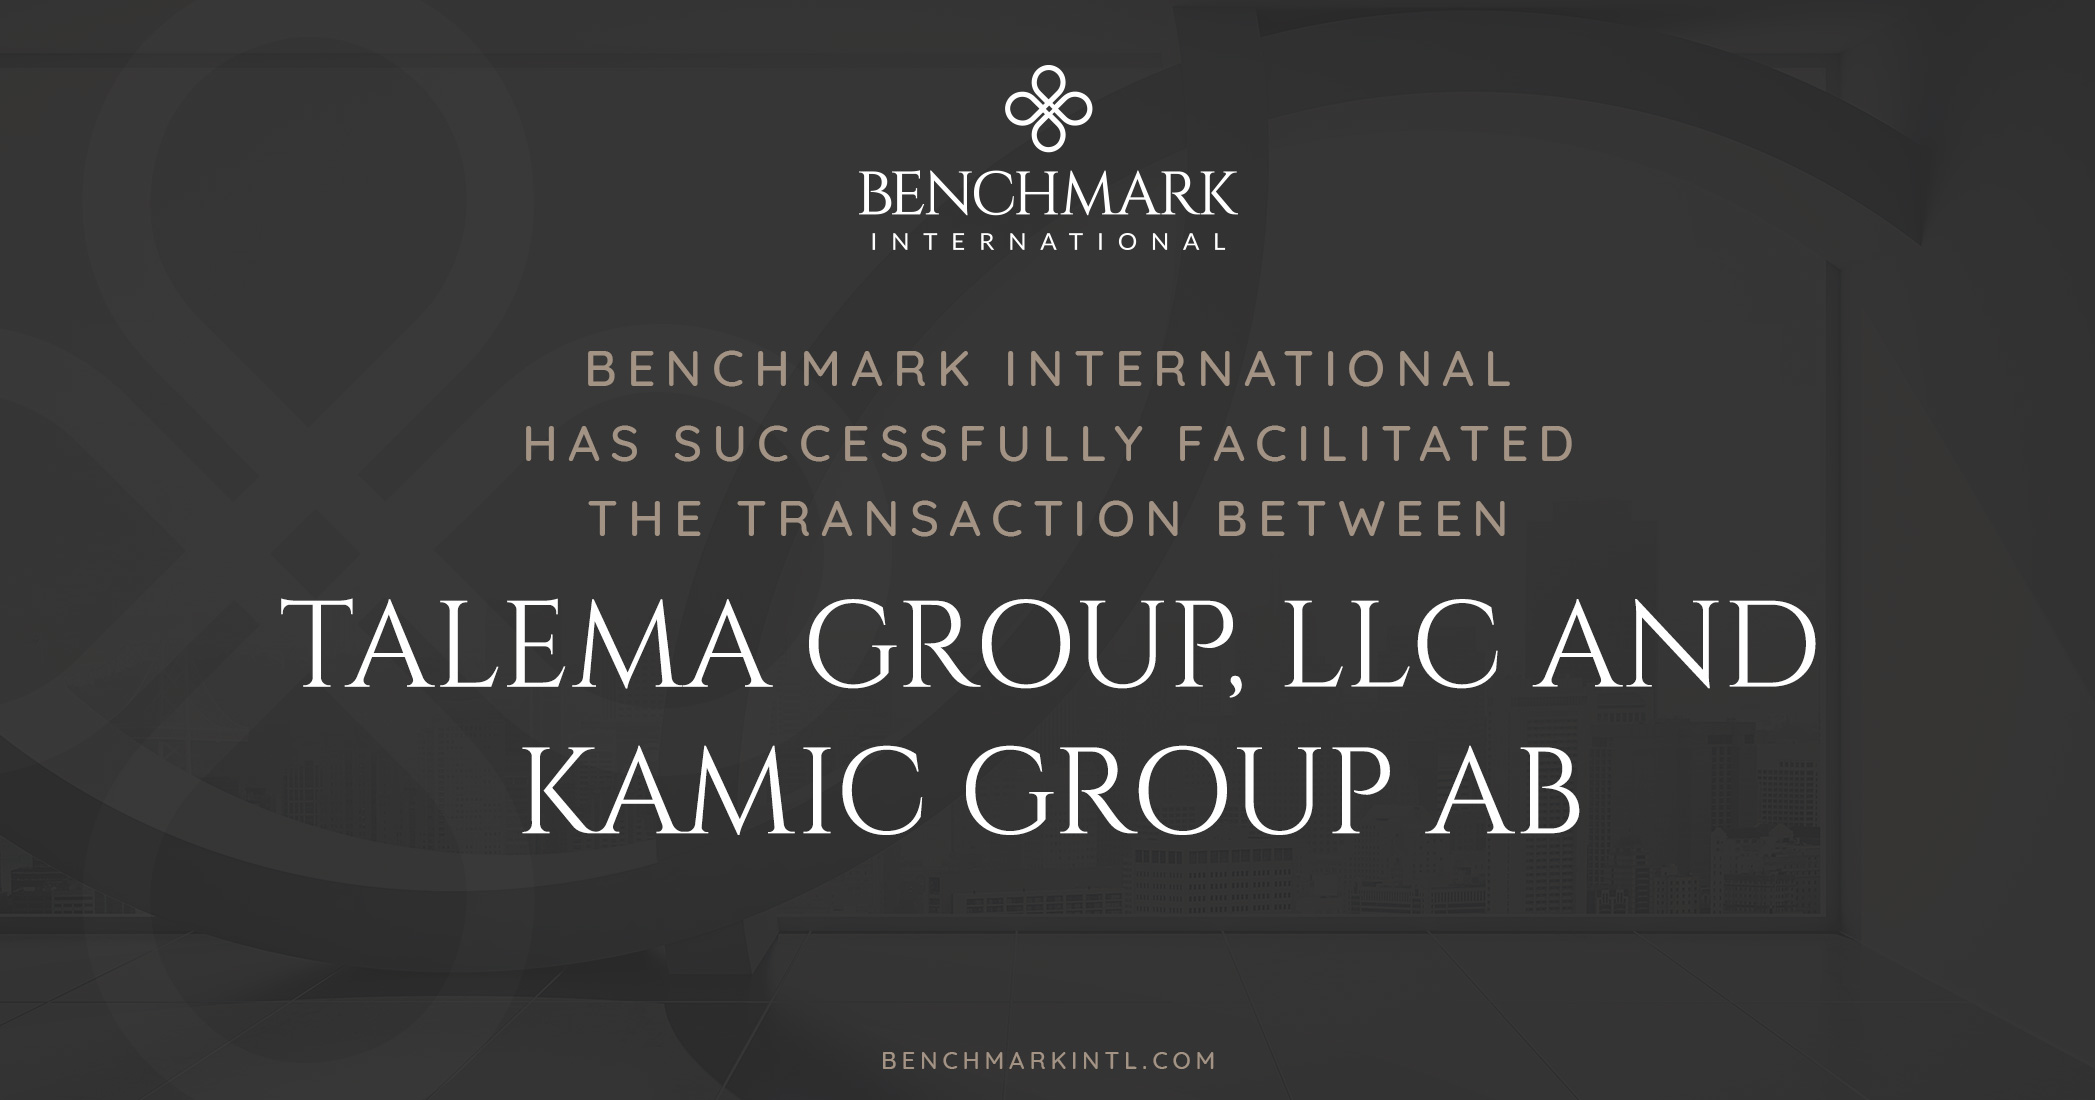 Benchmark International Successfully Facilitated the Transaction Between Talema Group, LLC and KAMIC Group AB